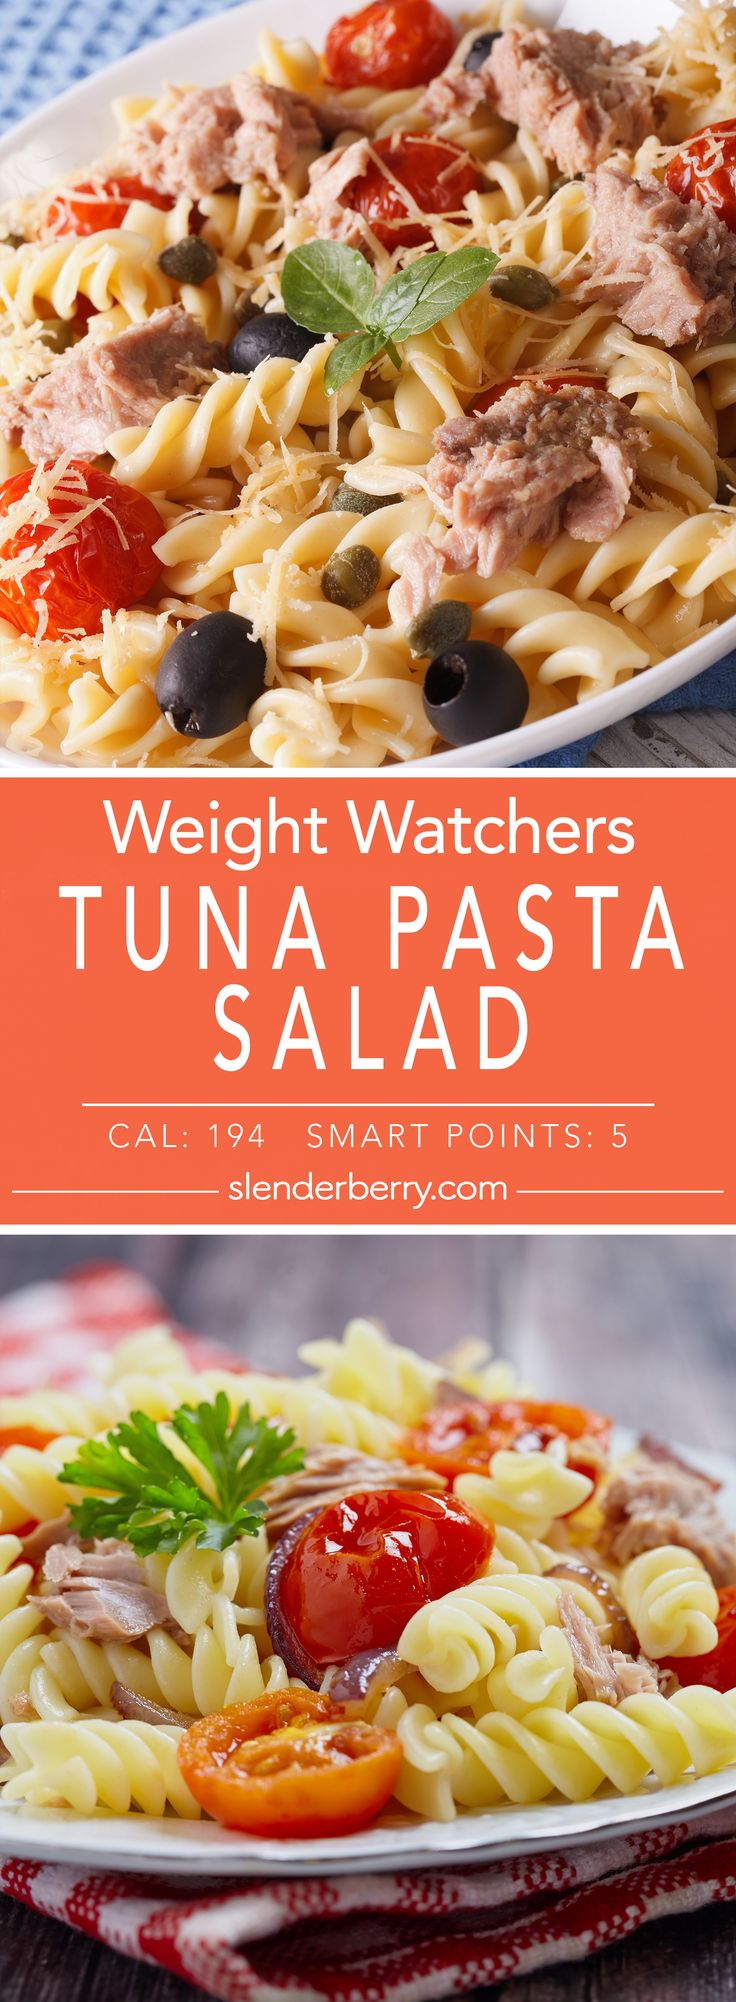 Weight Watchers Skinny Spicy Tuna Pasta Salad Recipe with 5 Smart Points - 194 Calories